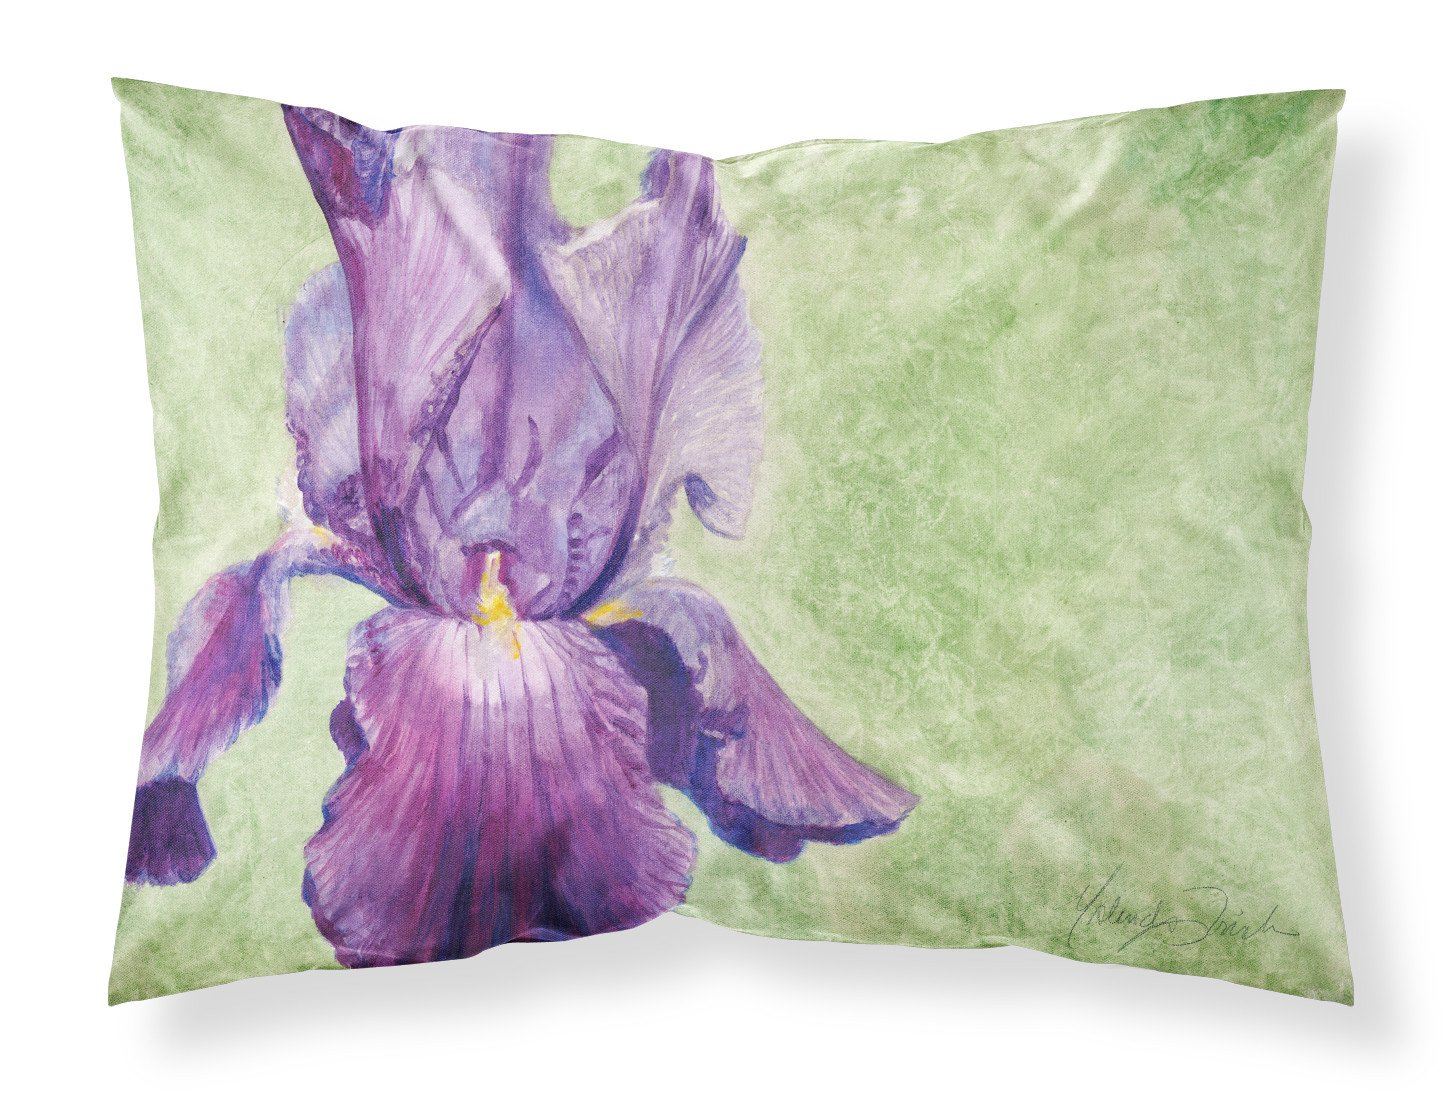 Purple Iris by Malenda Trick Fabric Standard Pillowcase TMTR0234PILLOWCASE by Caroline's Treasures